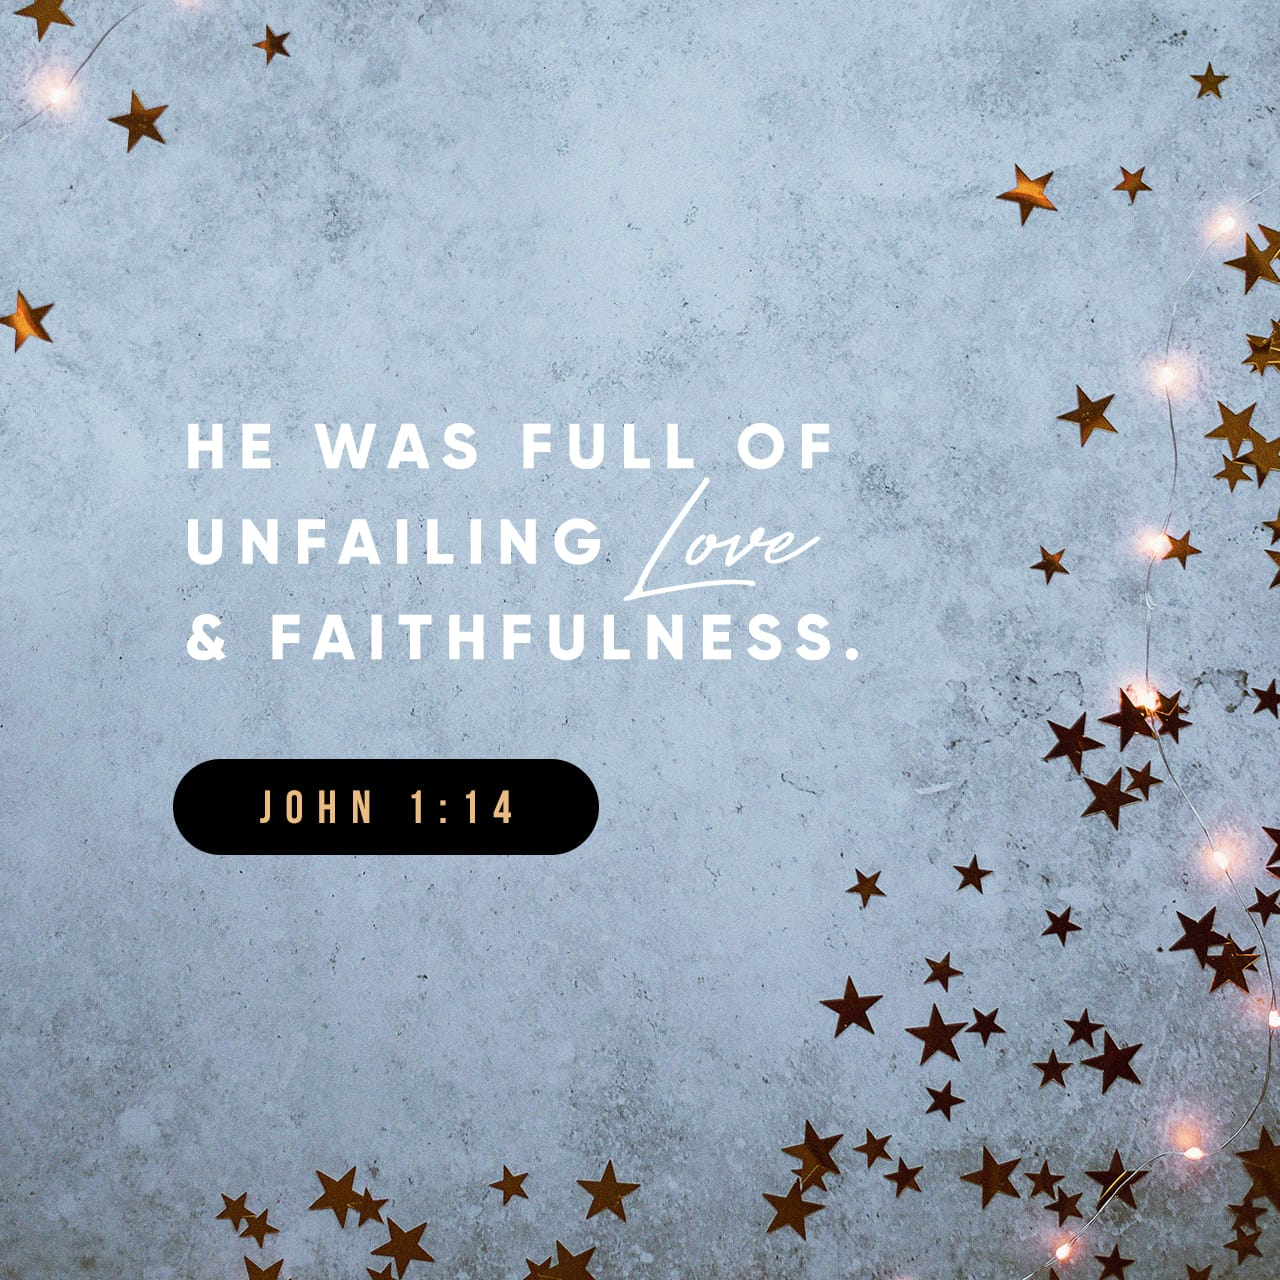 John 1:14 And the Word became flesh and dwelt among us, and we beheld His glory, the glory as of the only begotten of the Father, full of grace and truth. | New King James Version (NKJV)